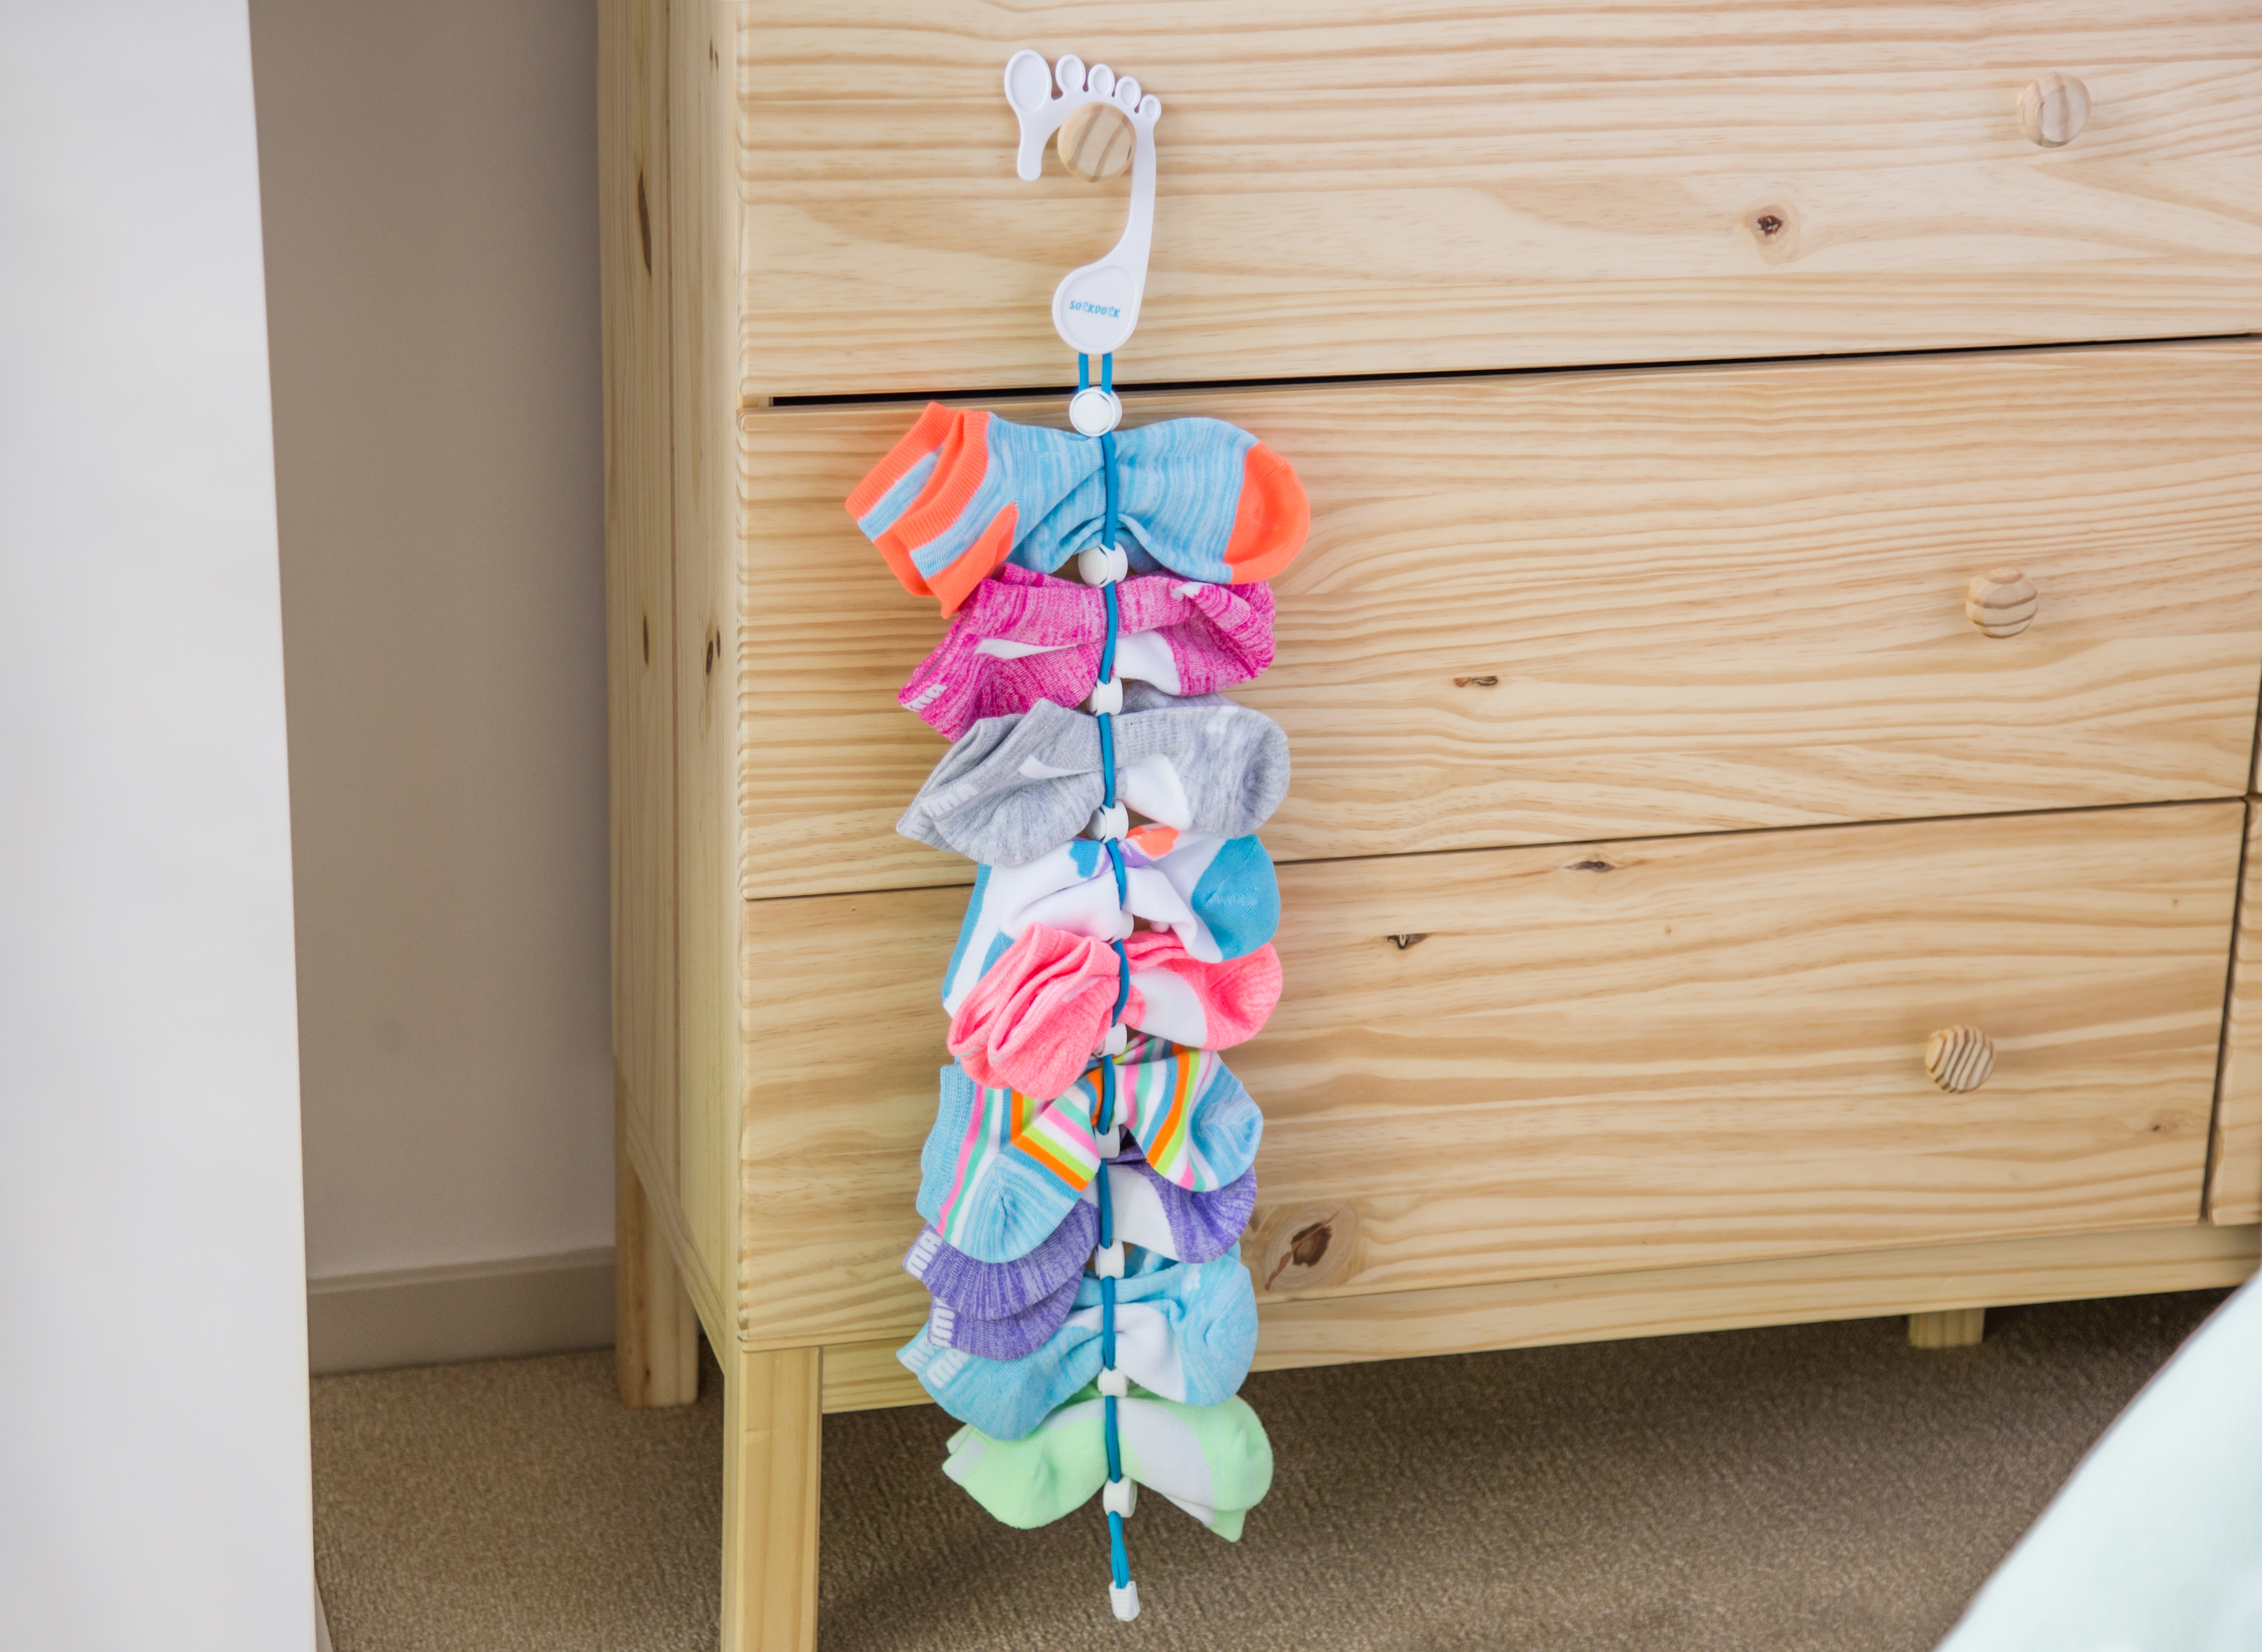 multicolored socks are seen hanging in a SockDock